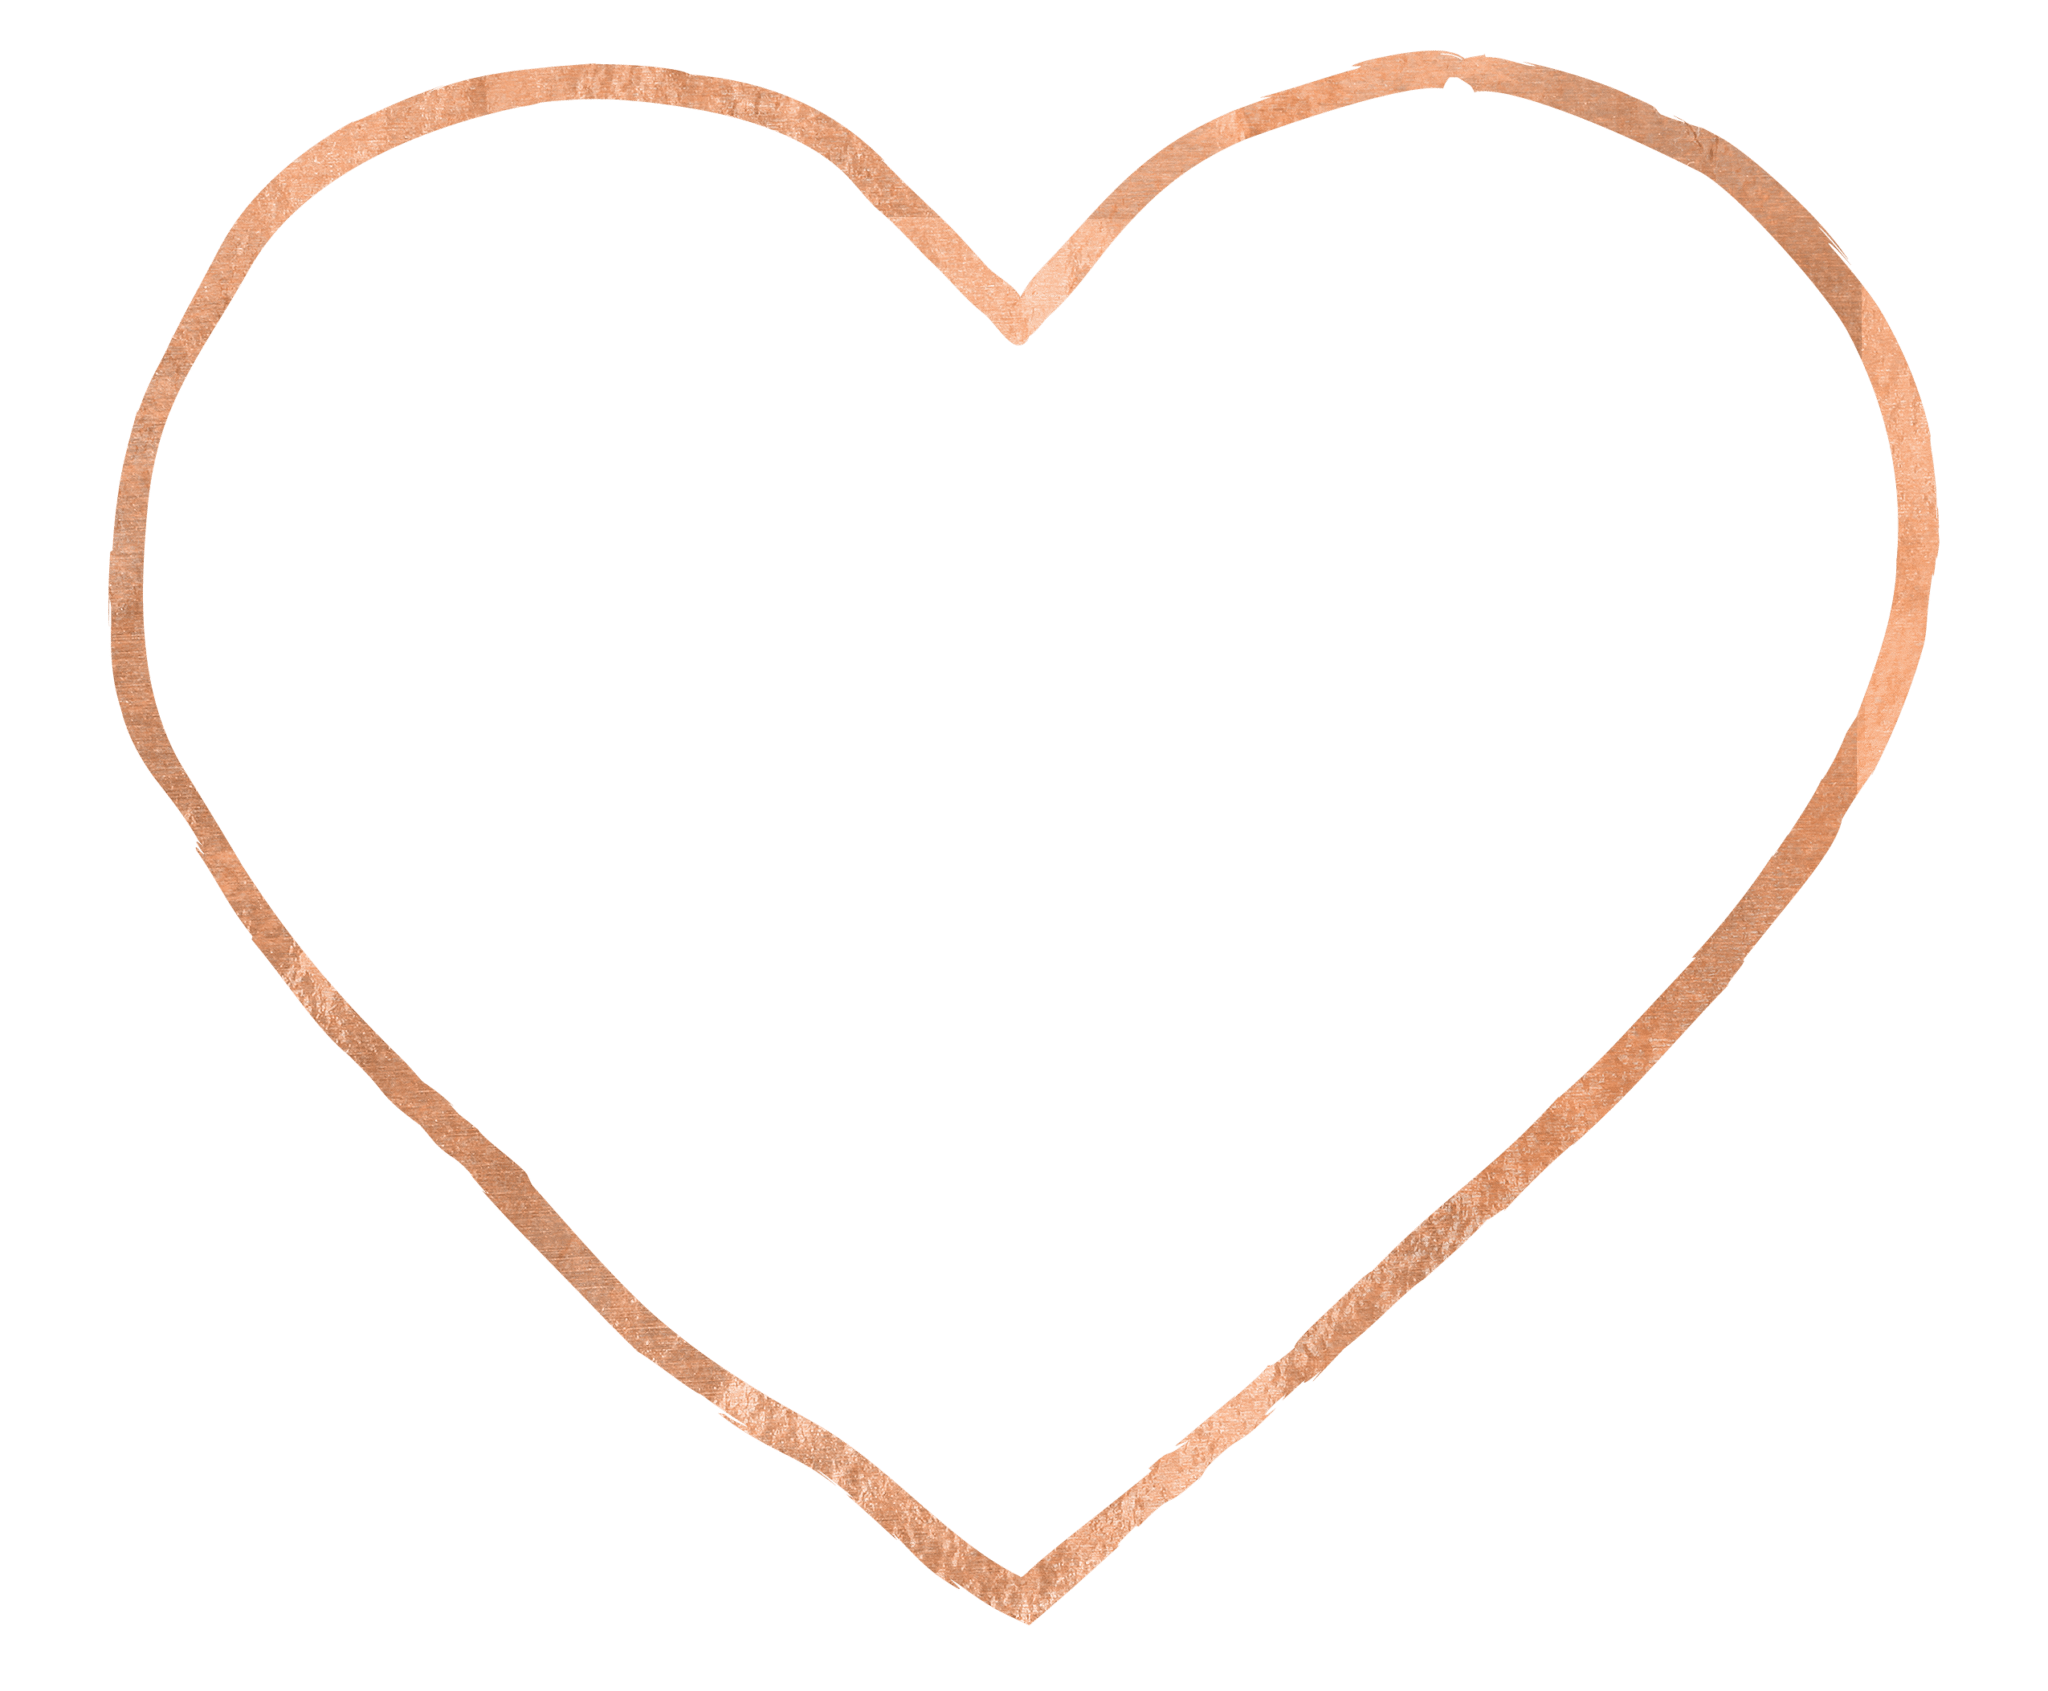 Rose gold heart clipart picture freeuse download About You – Showgirl Awakening picture freeuse download